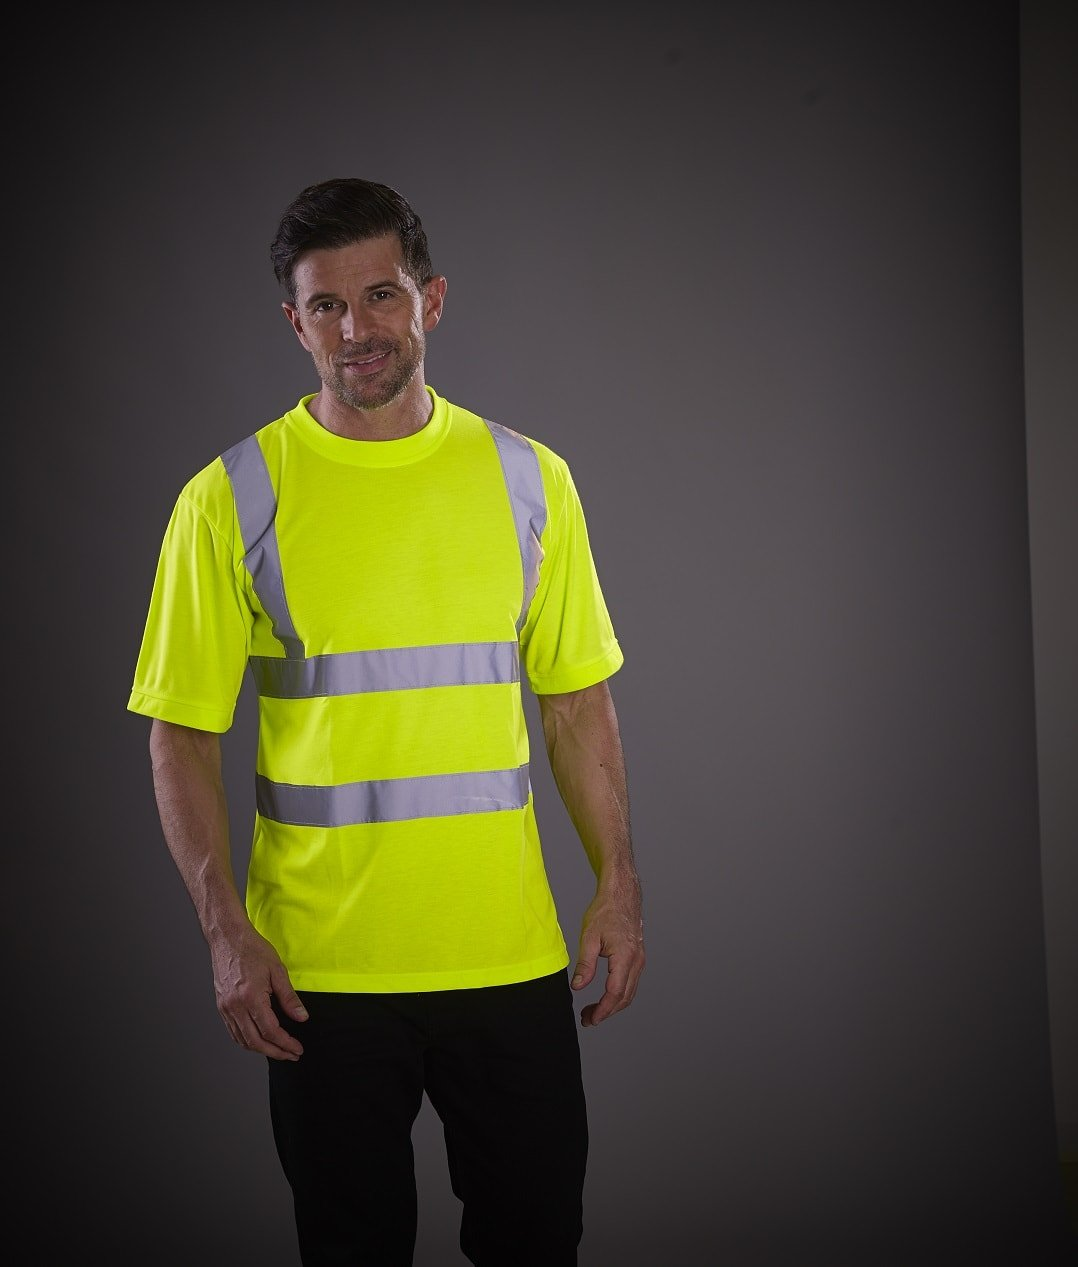 Personalised yellow Hi-Vis t-shirt with logo, www.ontimeprint.co.uk